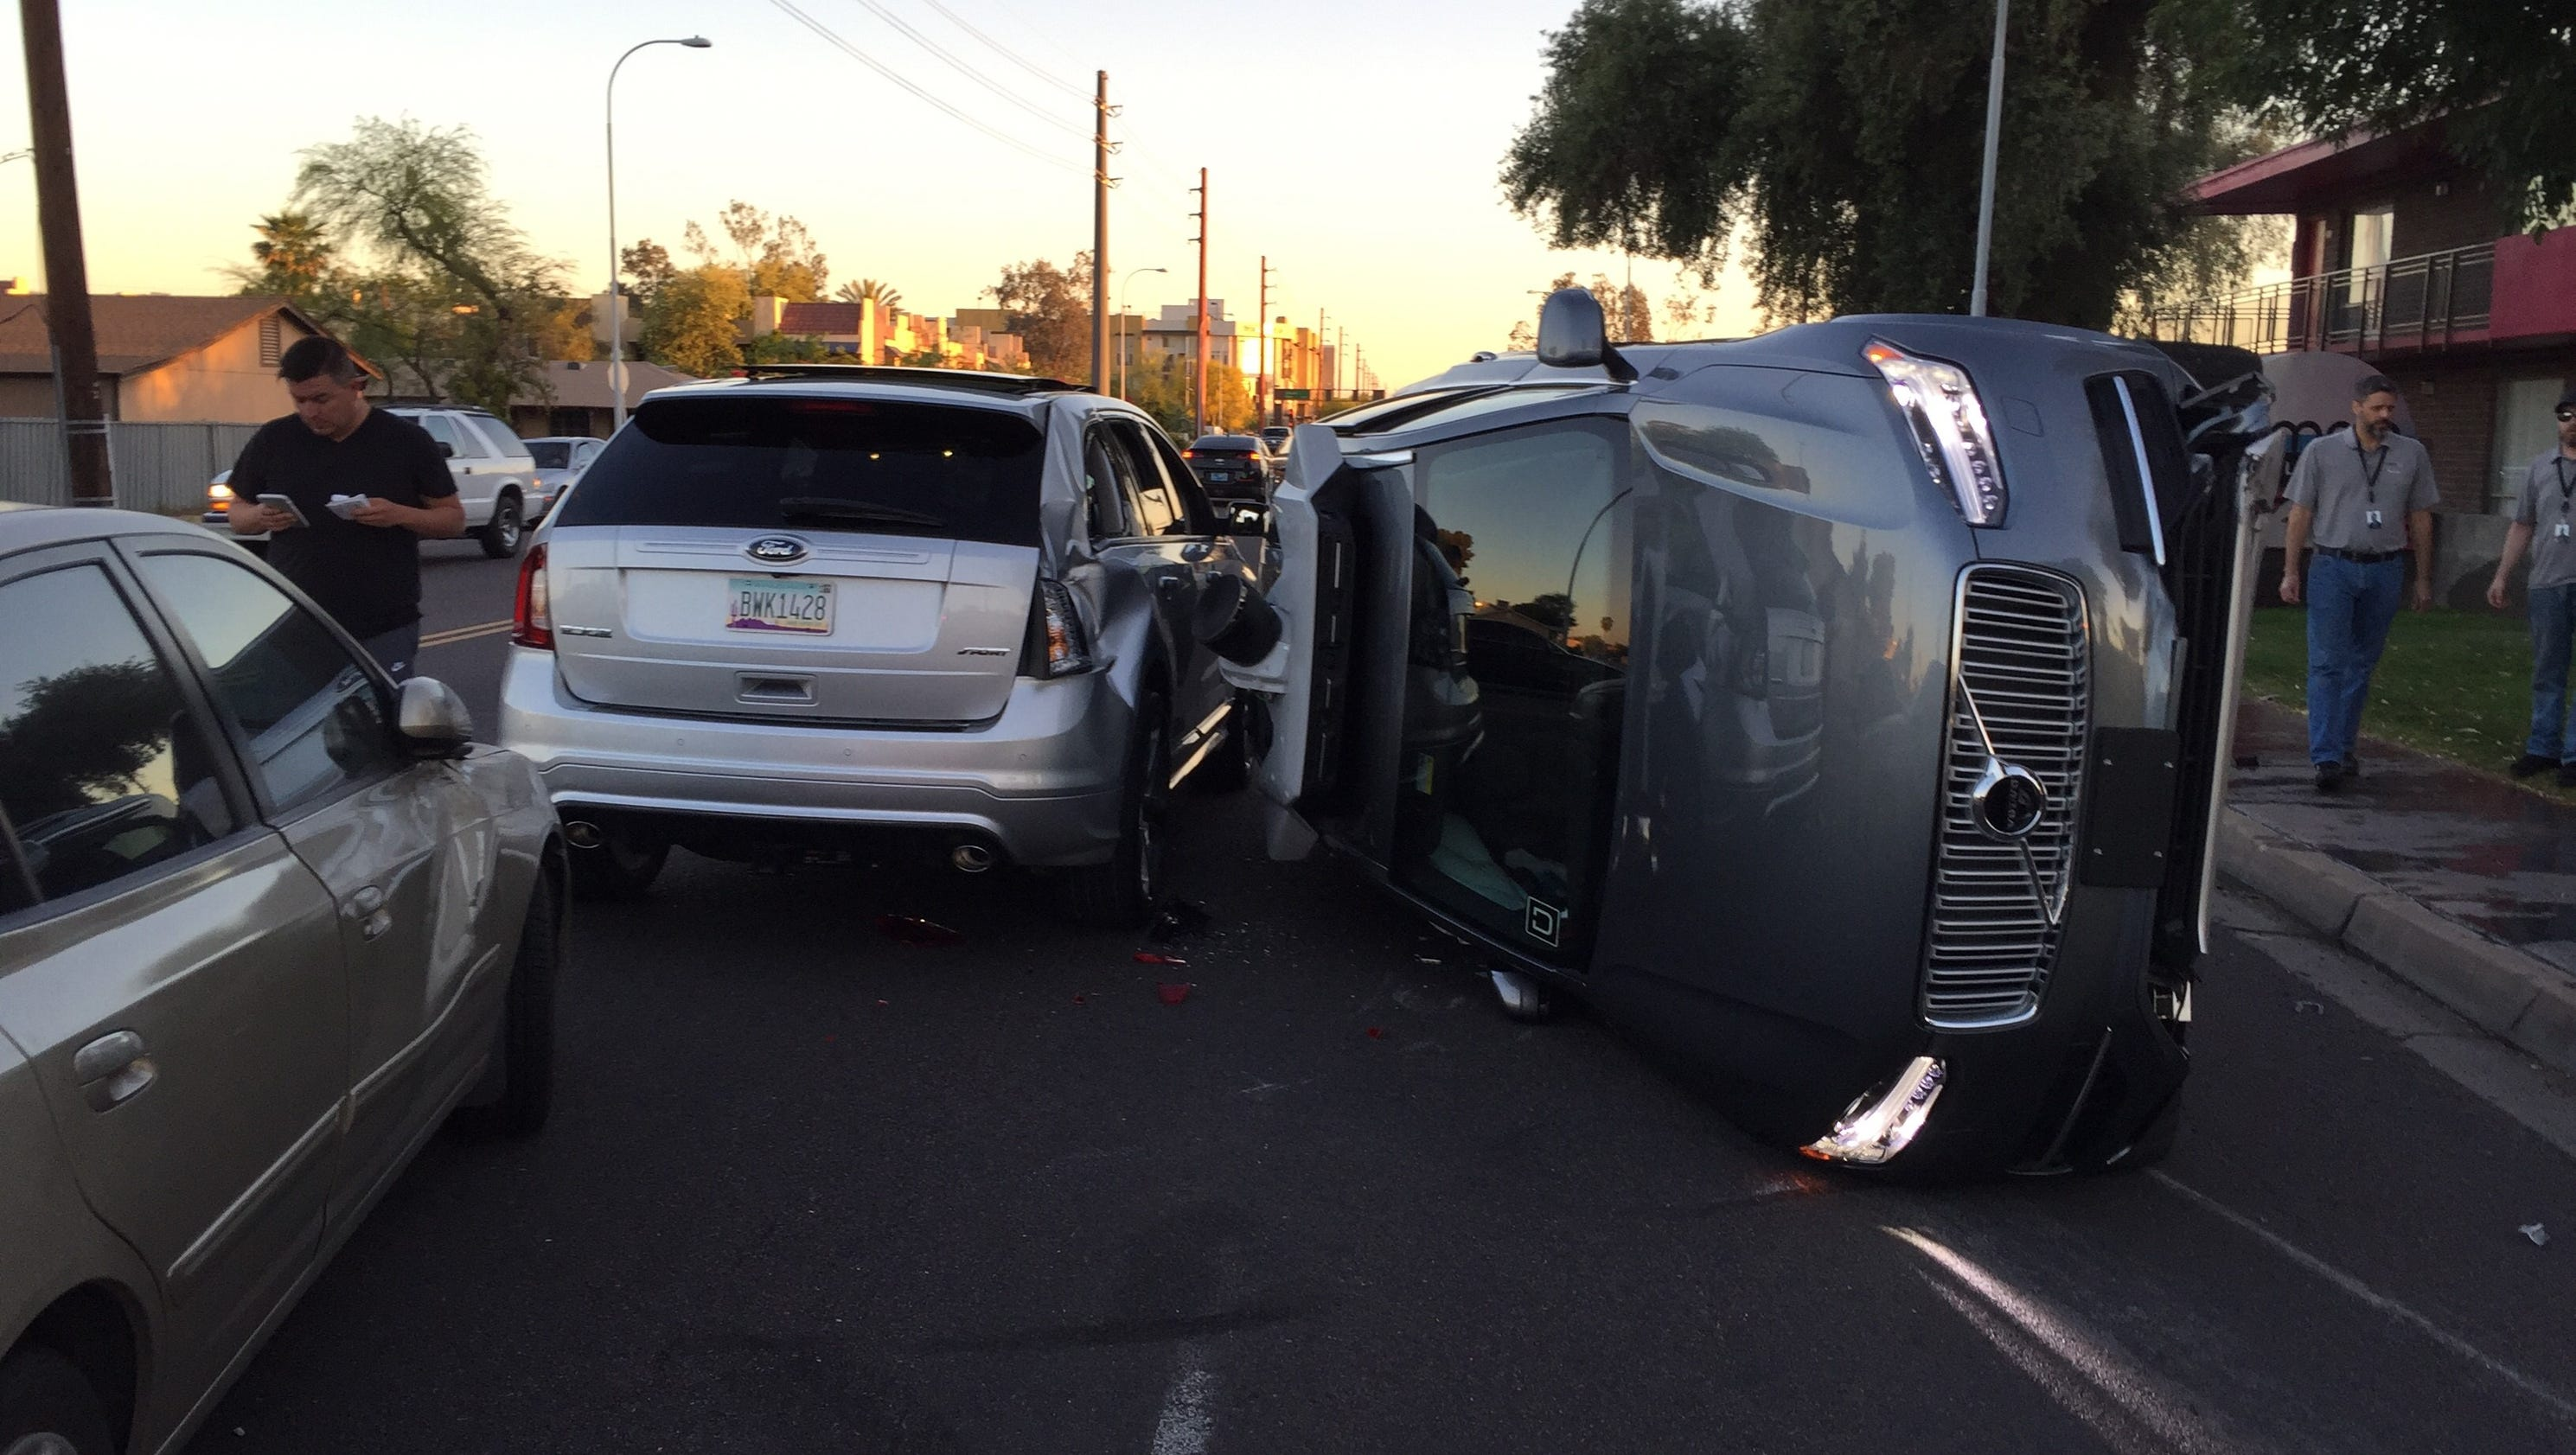 Who Was At Fault In Self Driving Uber Crash Accounts In Tempe Police Report Disagree